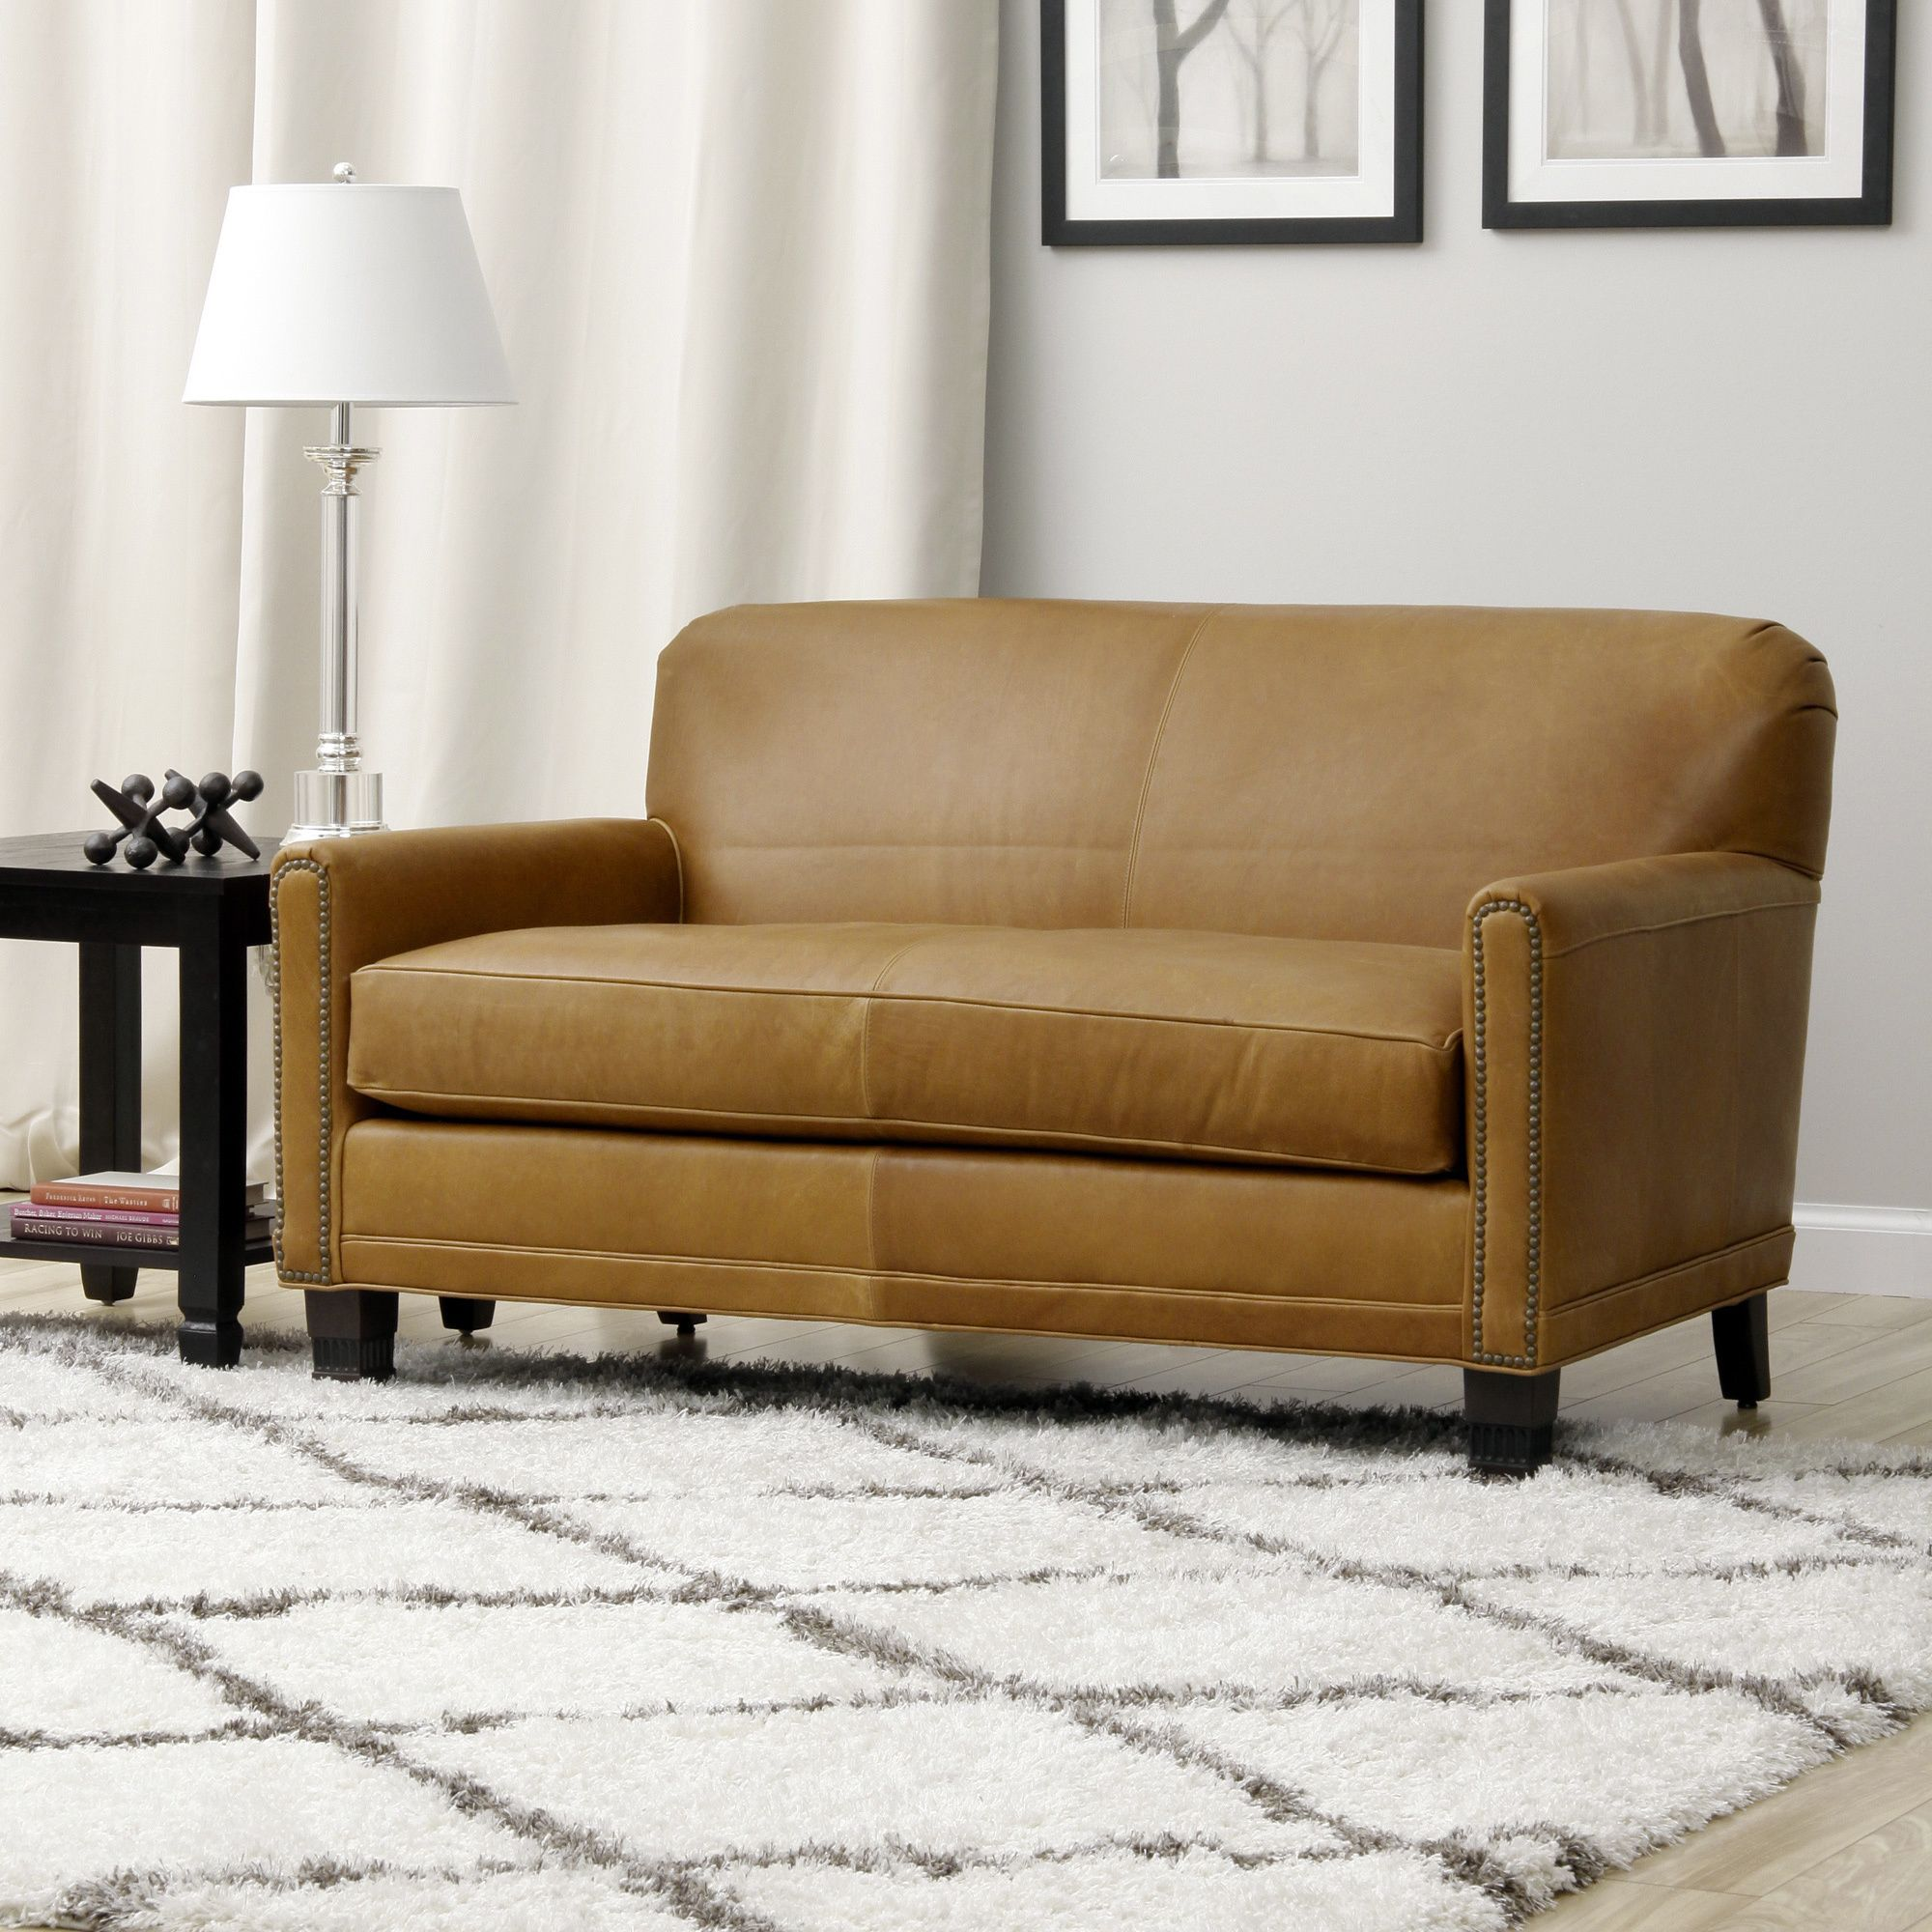 Smooth Caramel Colored Leather And Sturdy Hardwood